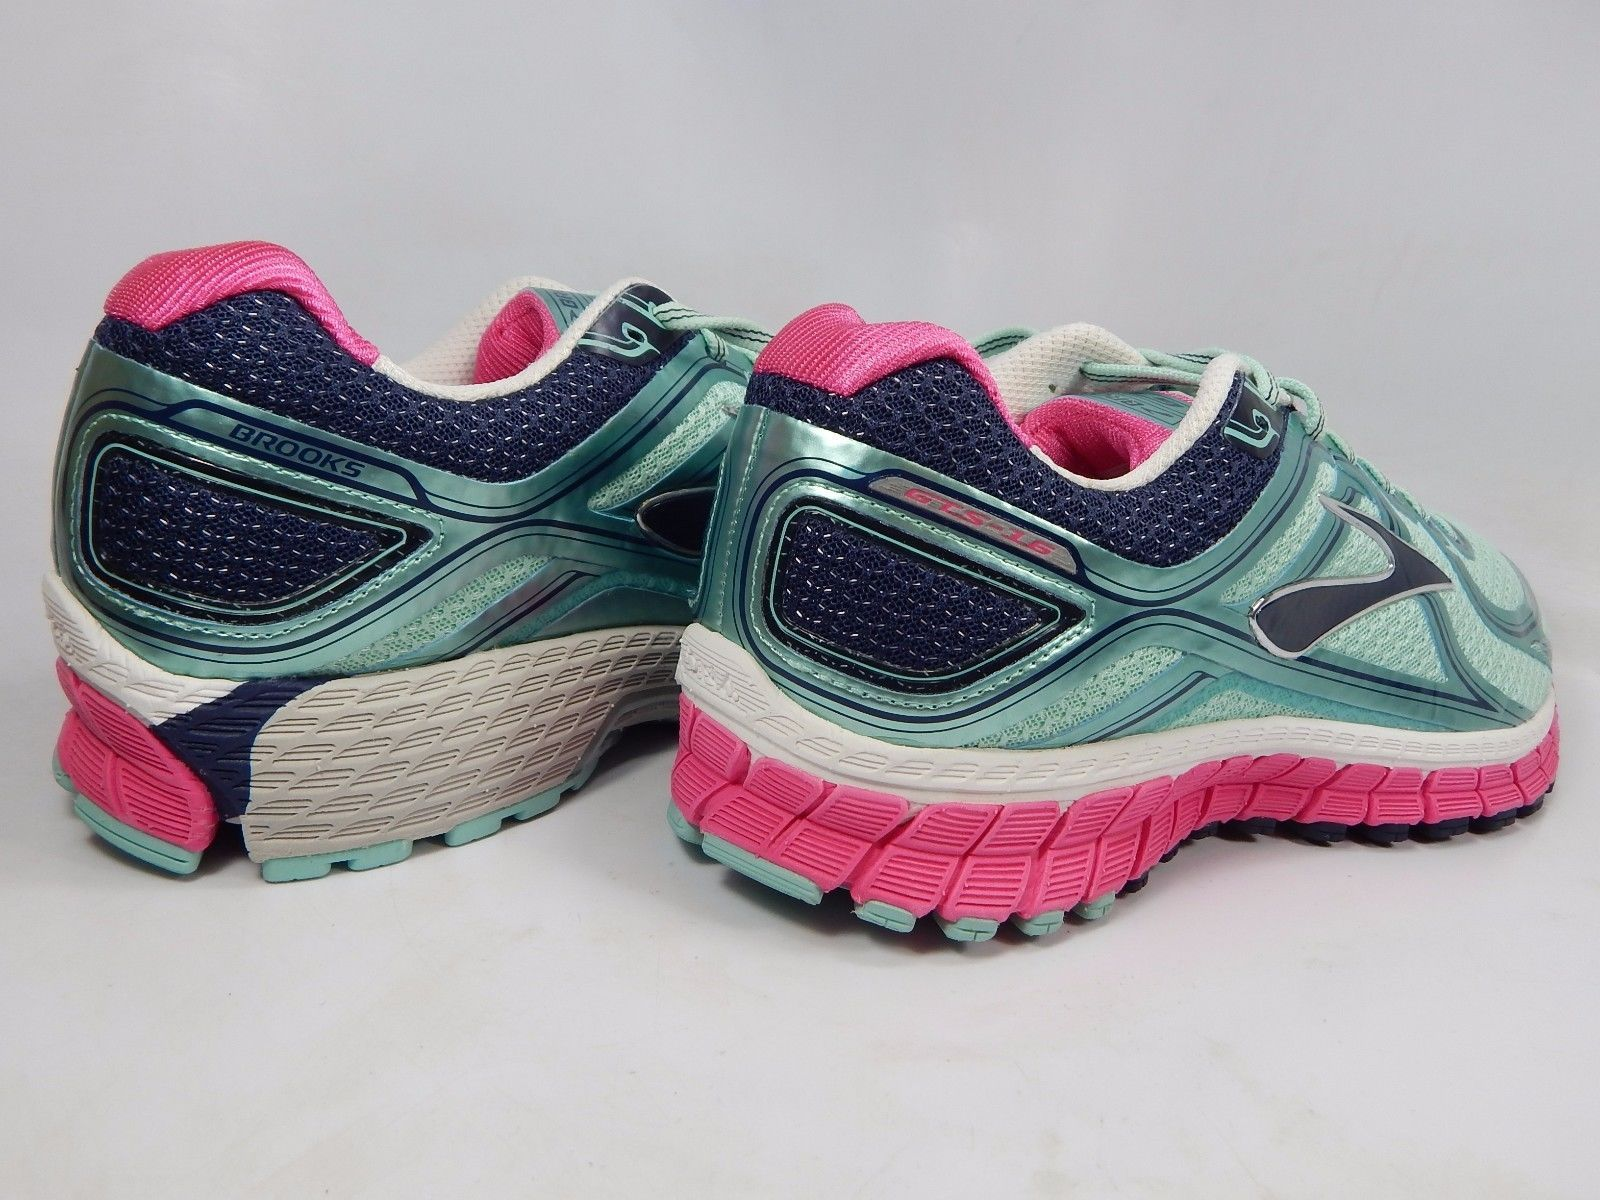 Brooks Adrenaline GTS 16 Womens Running Shoes Sz US 11 M (B) EU 43  1202031B418